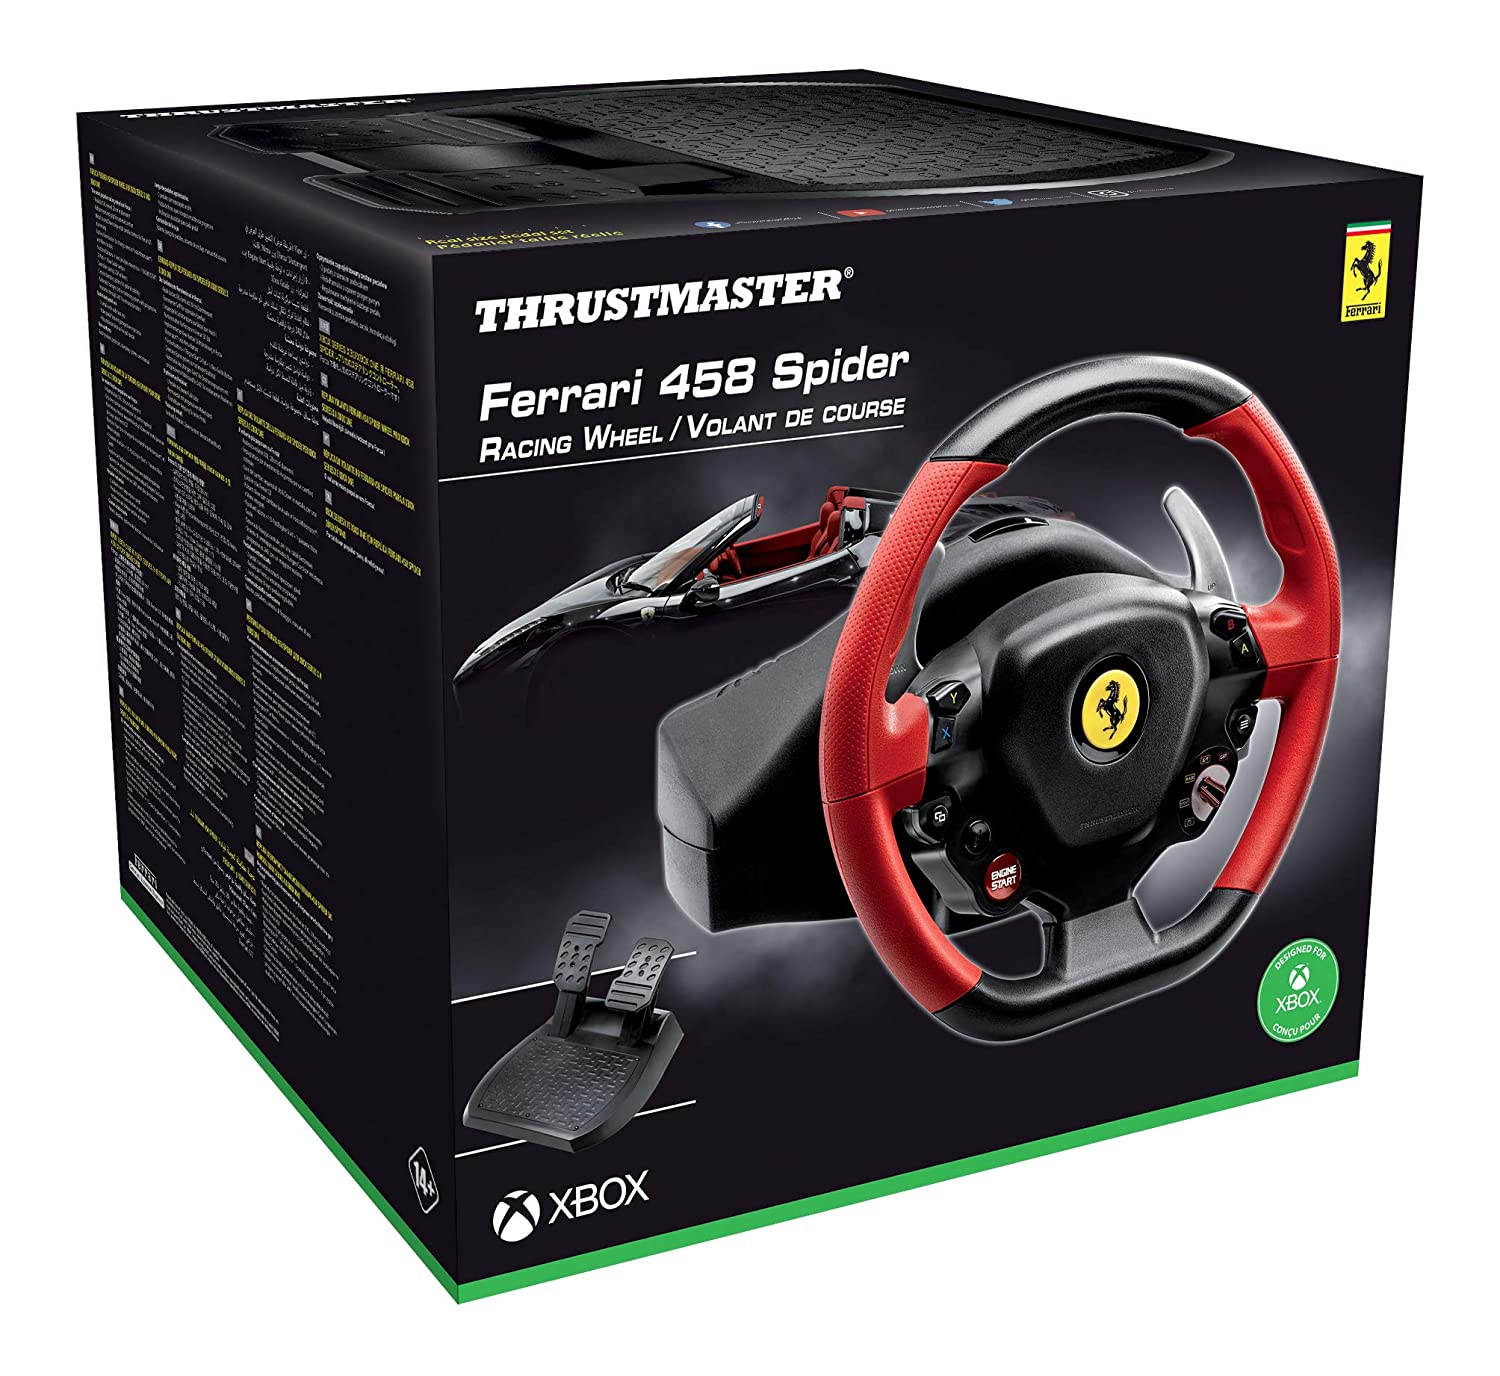 Thrustmaster Ferrari 458 Spider Racing Wheel Replik Des Ferrari 458 Spider Lenkers Großes Anpassbares Und Optimiertes Pedalset Funktioniert Mit Xbox Series X S Amazon De Games